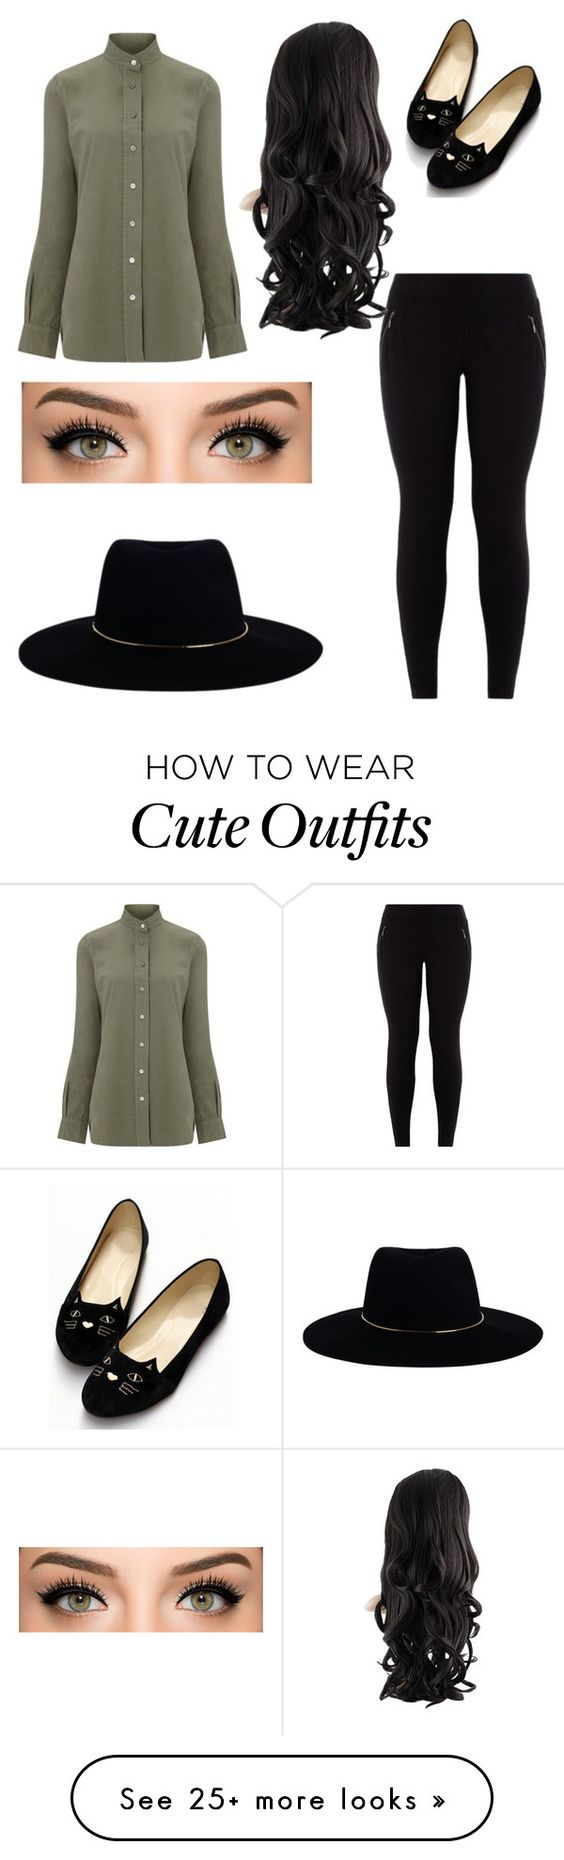 """""""cute outfits"""" by pitmar on Polyvore featuring Frame Denim and Zimmermann"""